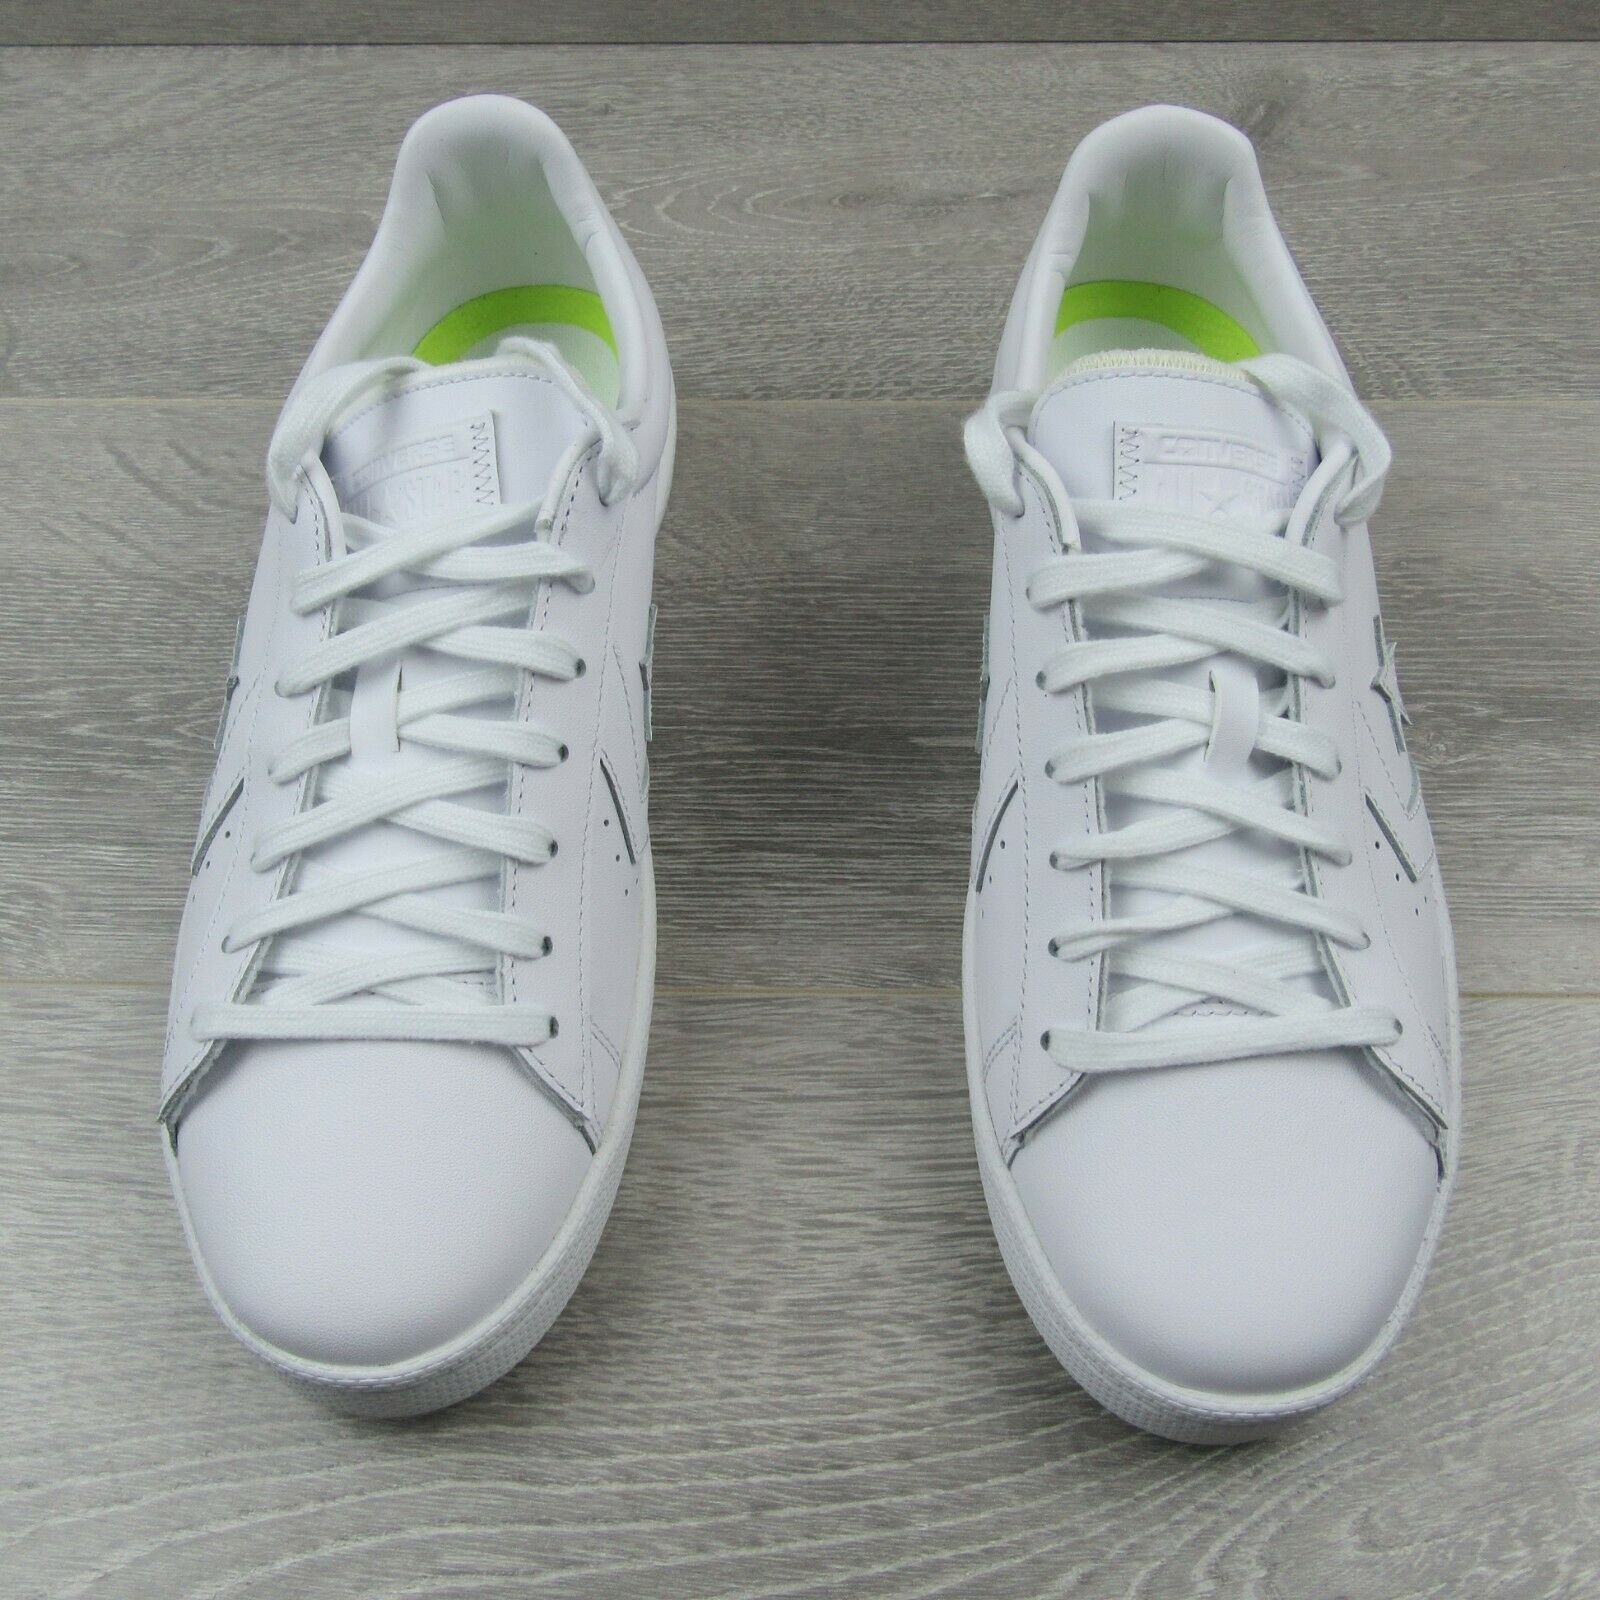 Converse Pro Leather Ox Low Triple White Shoes Size 11 Mens 155319C New image 6